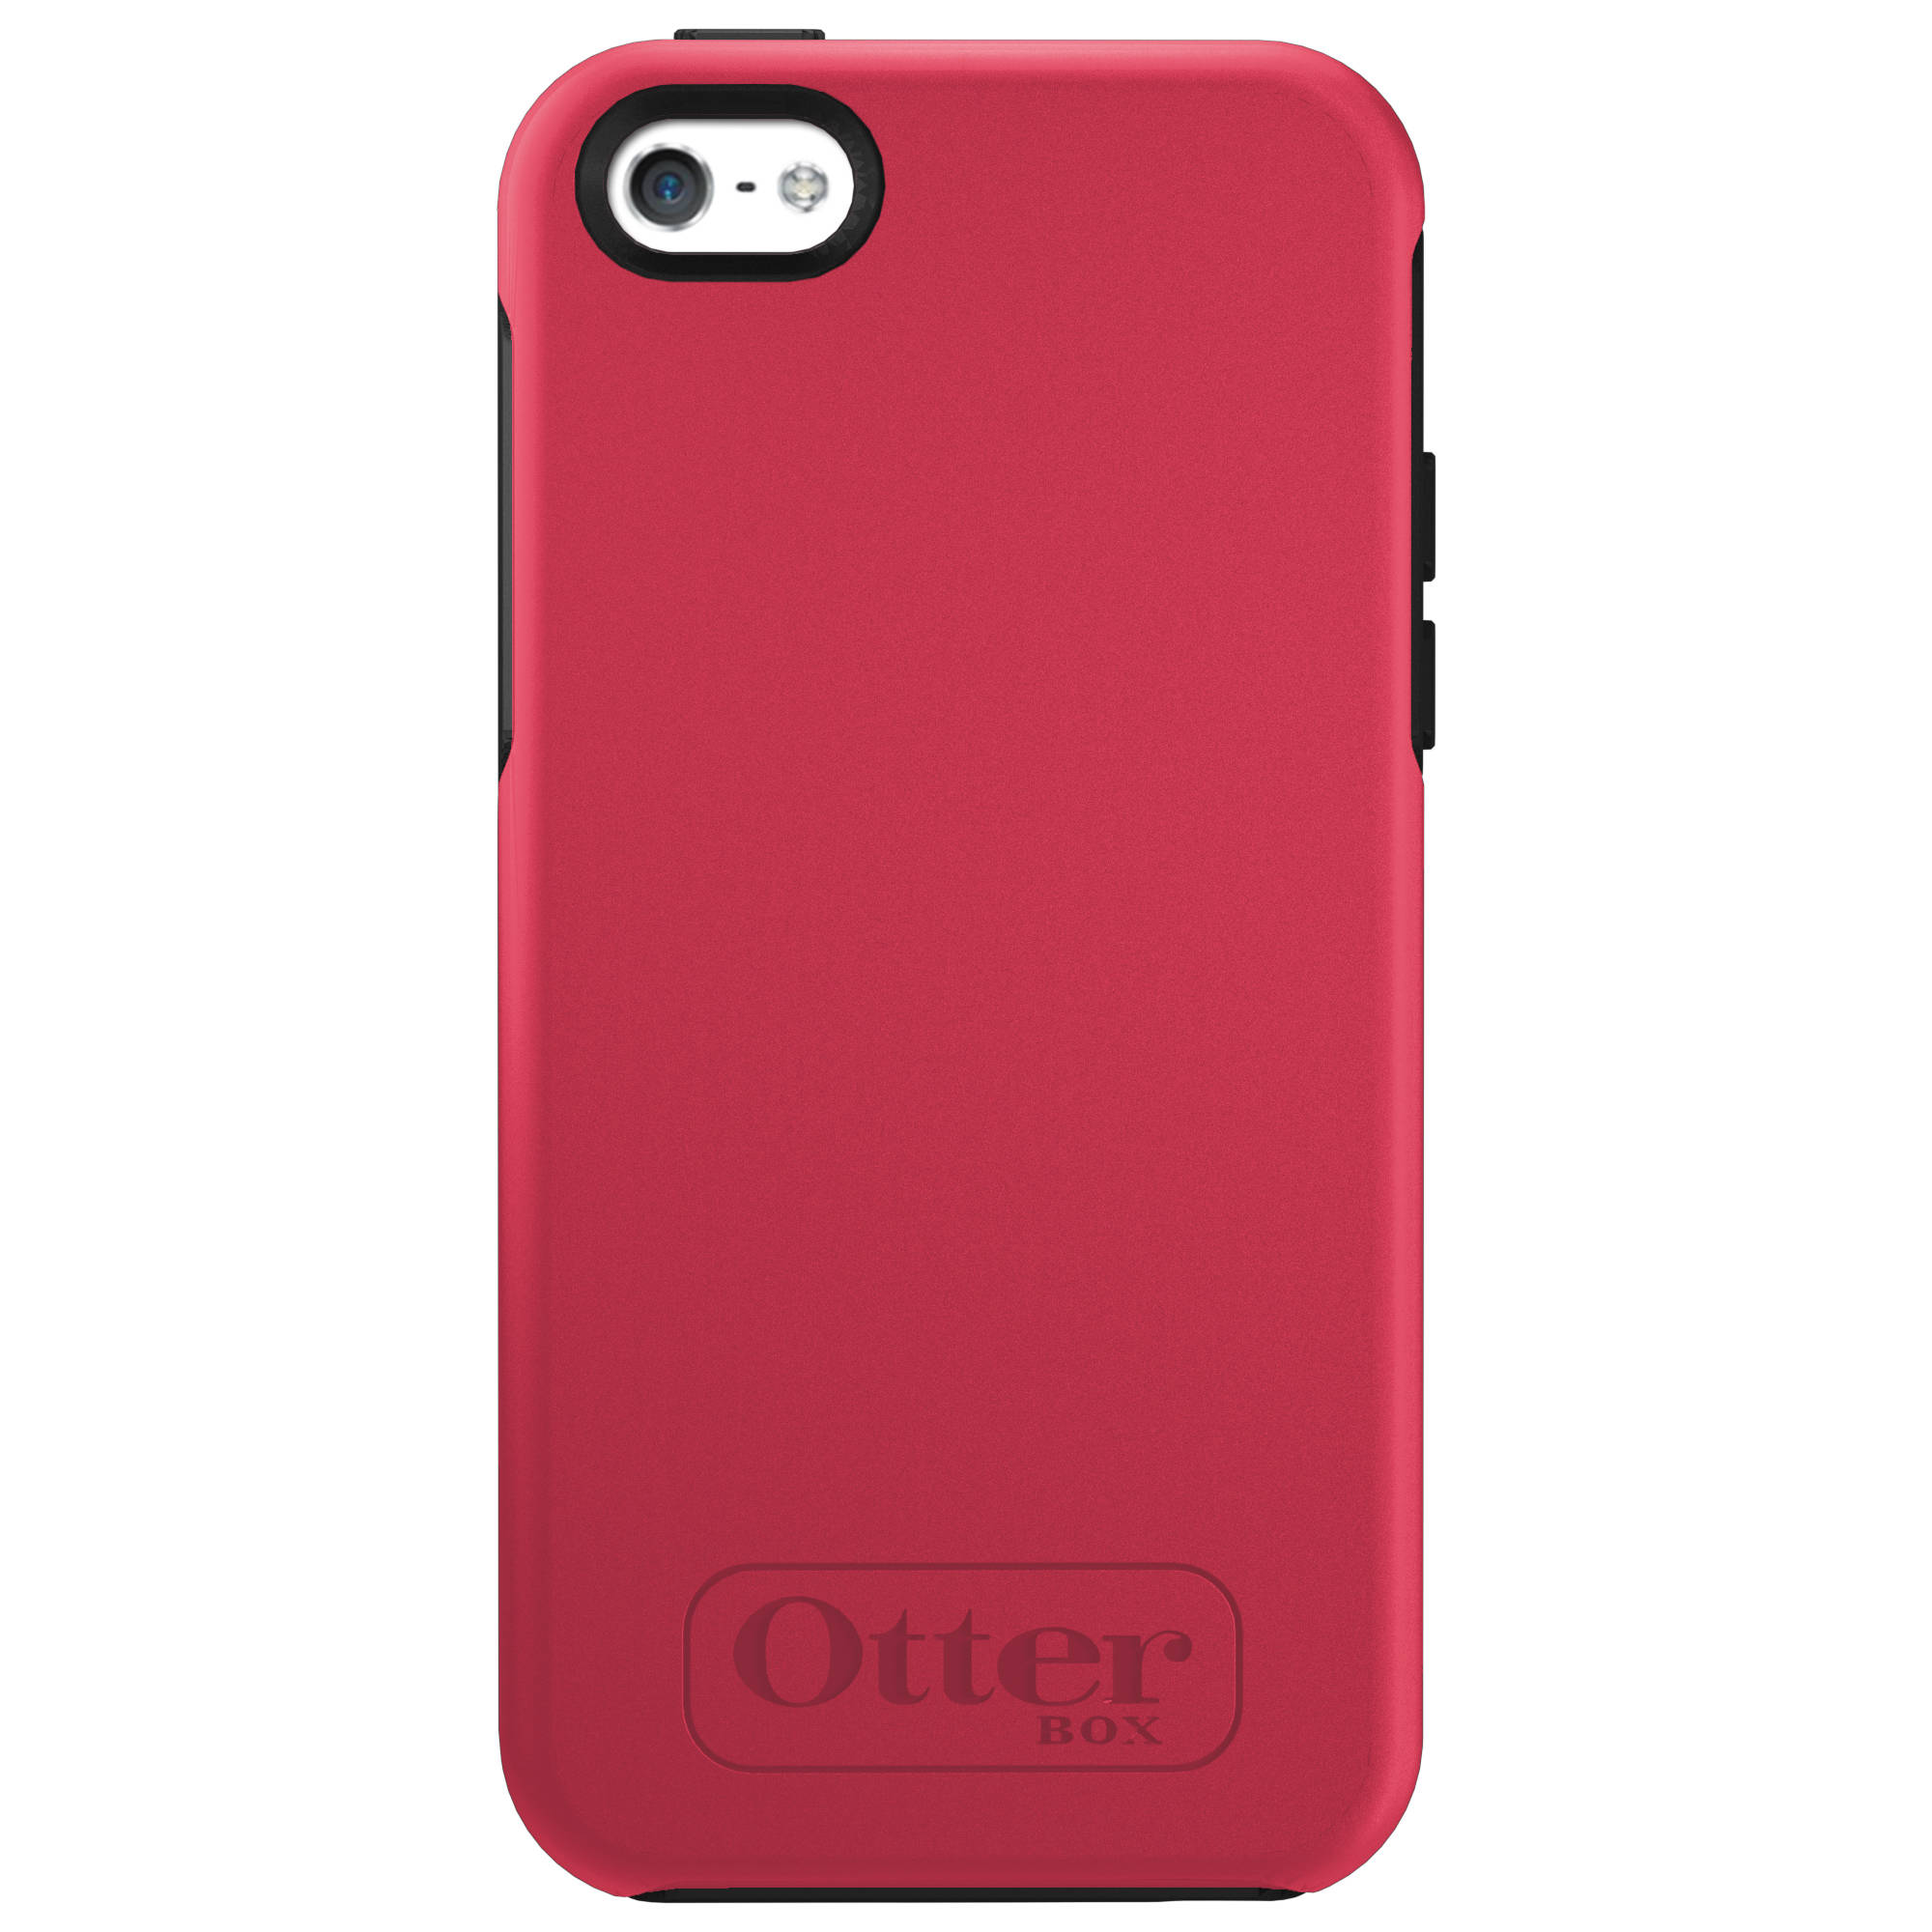 otterboxes for iphone 5c otter box symmetry series for iphone 5c 77 37108 b amp h 1238